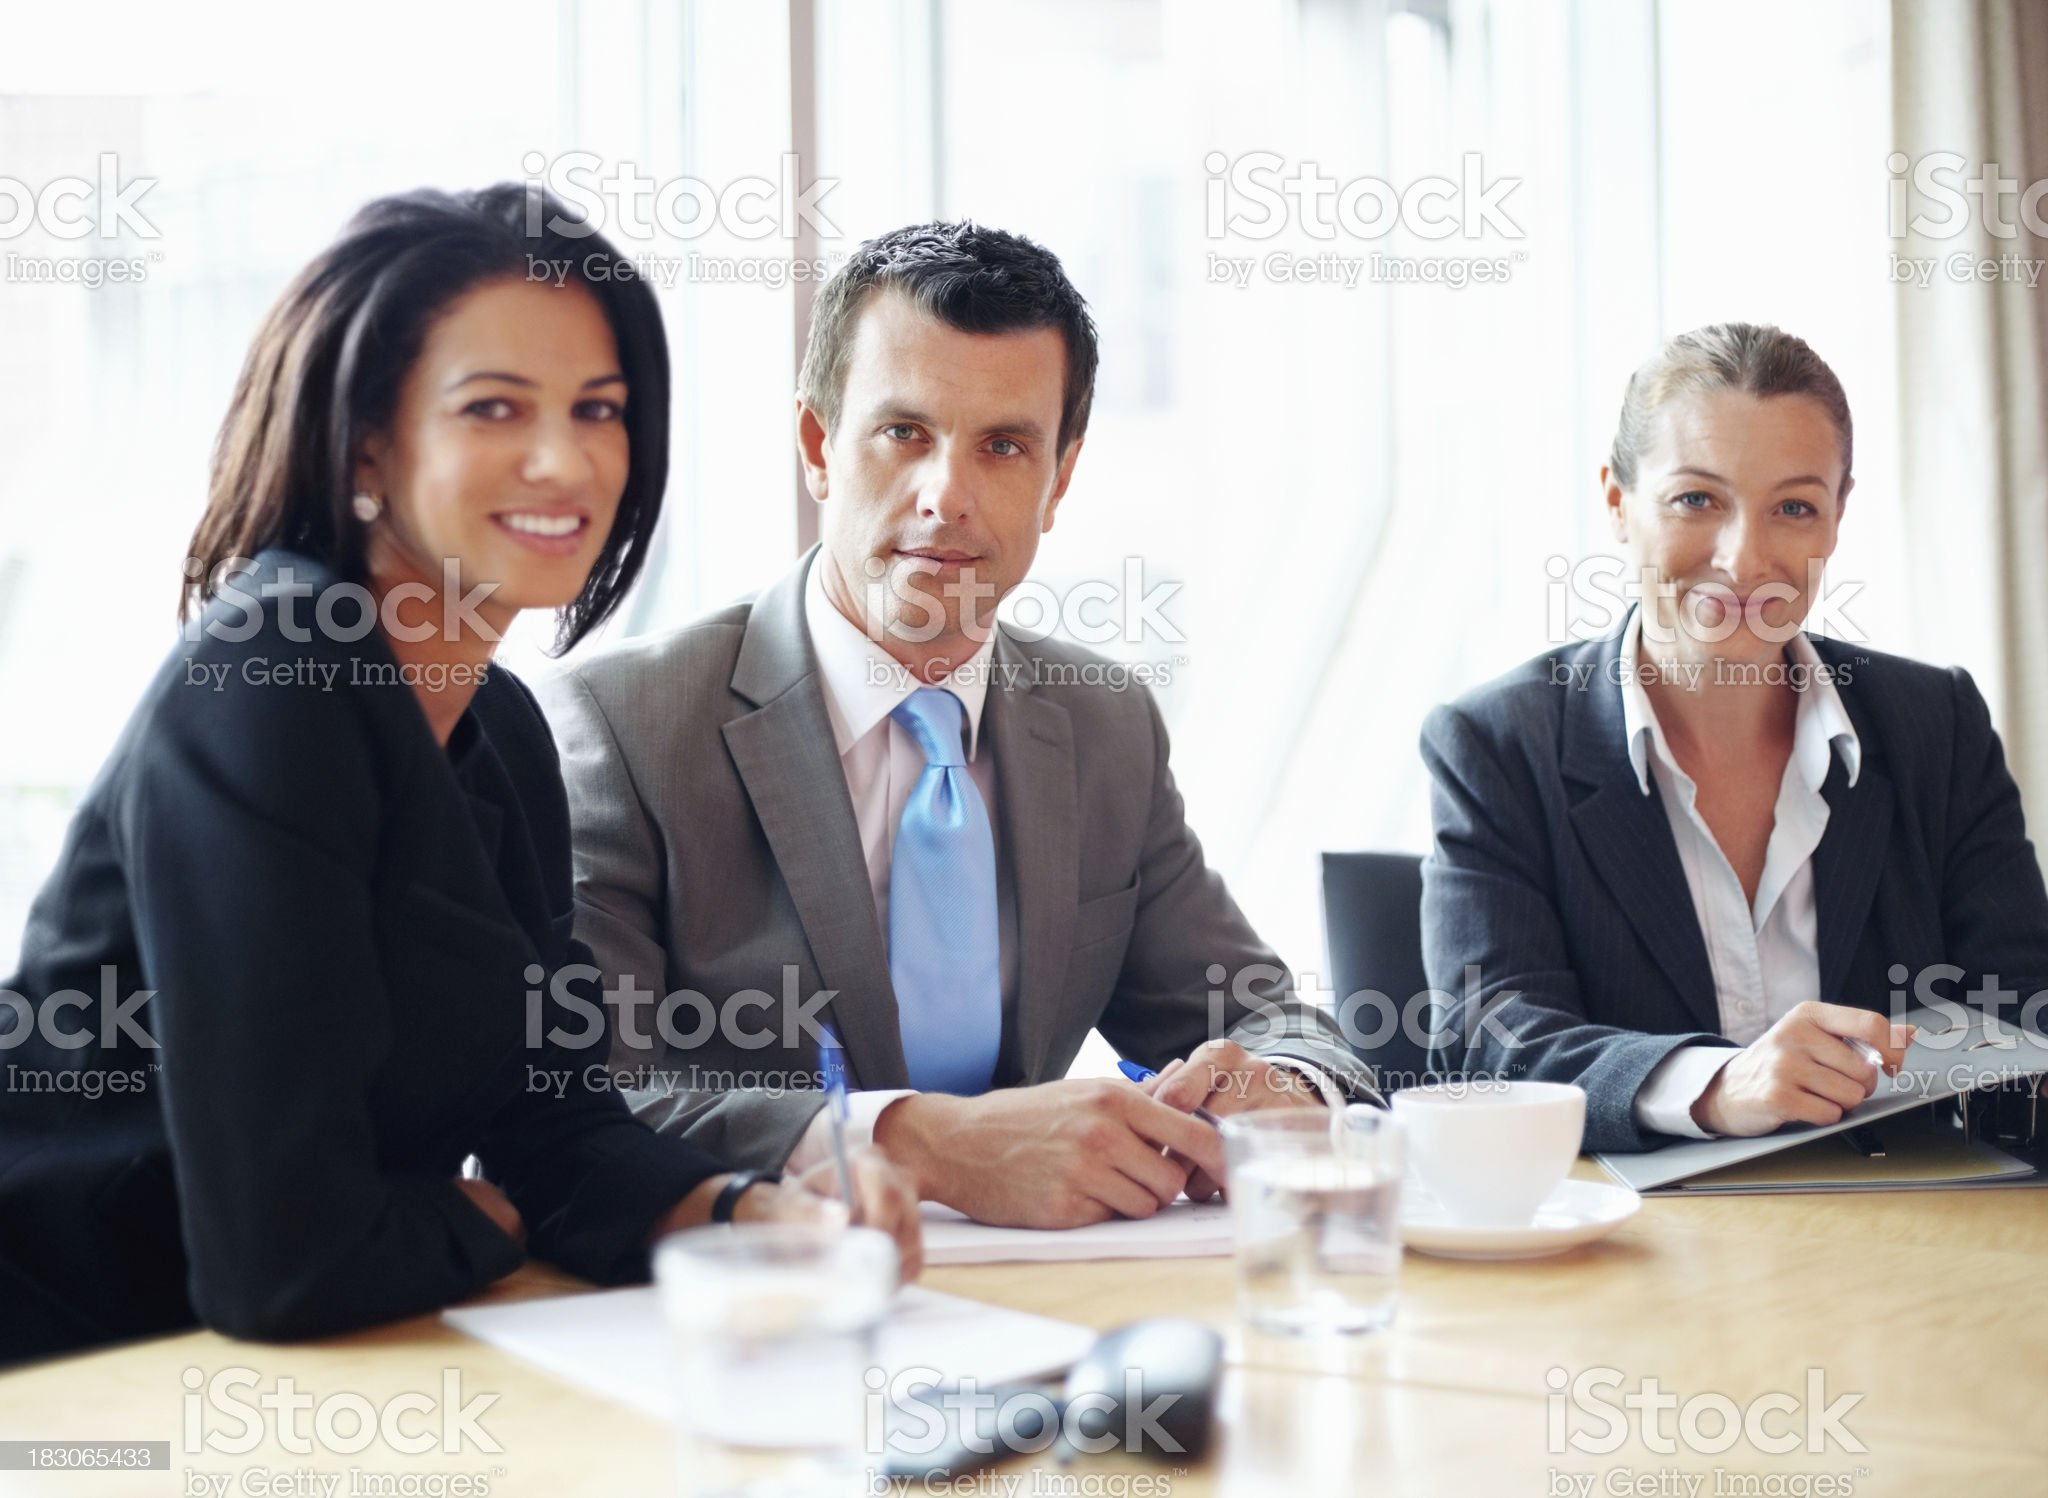 Three businesspeople having a meeting in conference room royalty-free stock photo